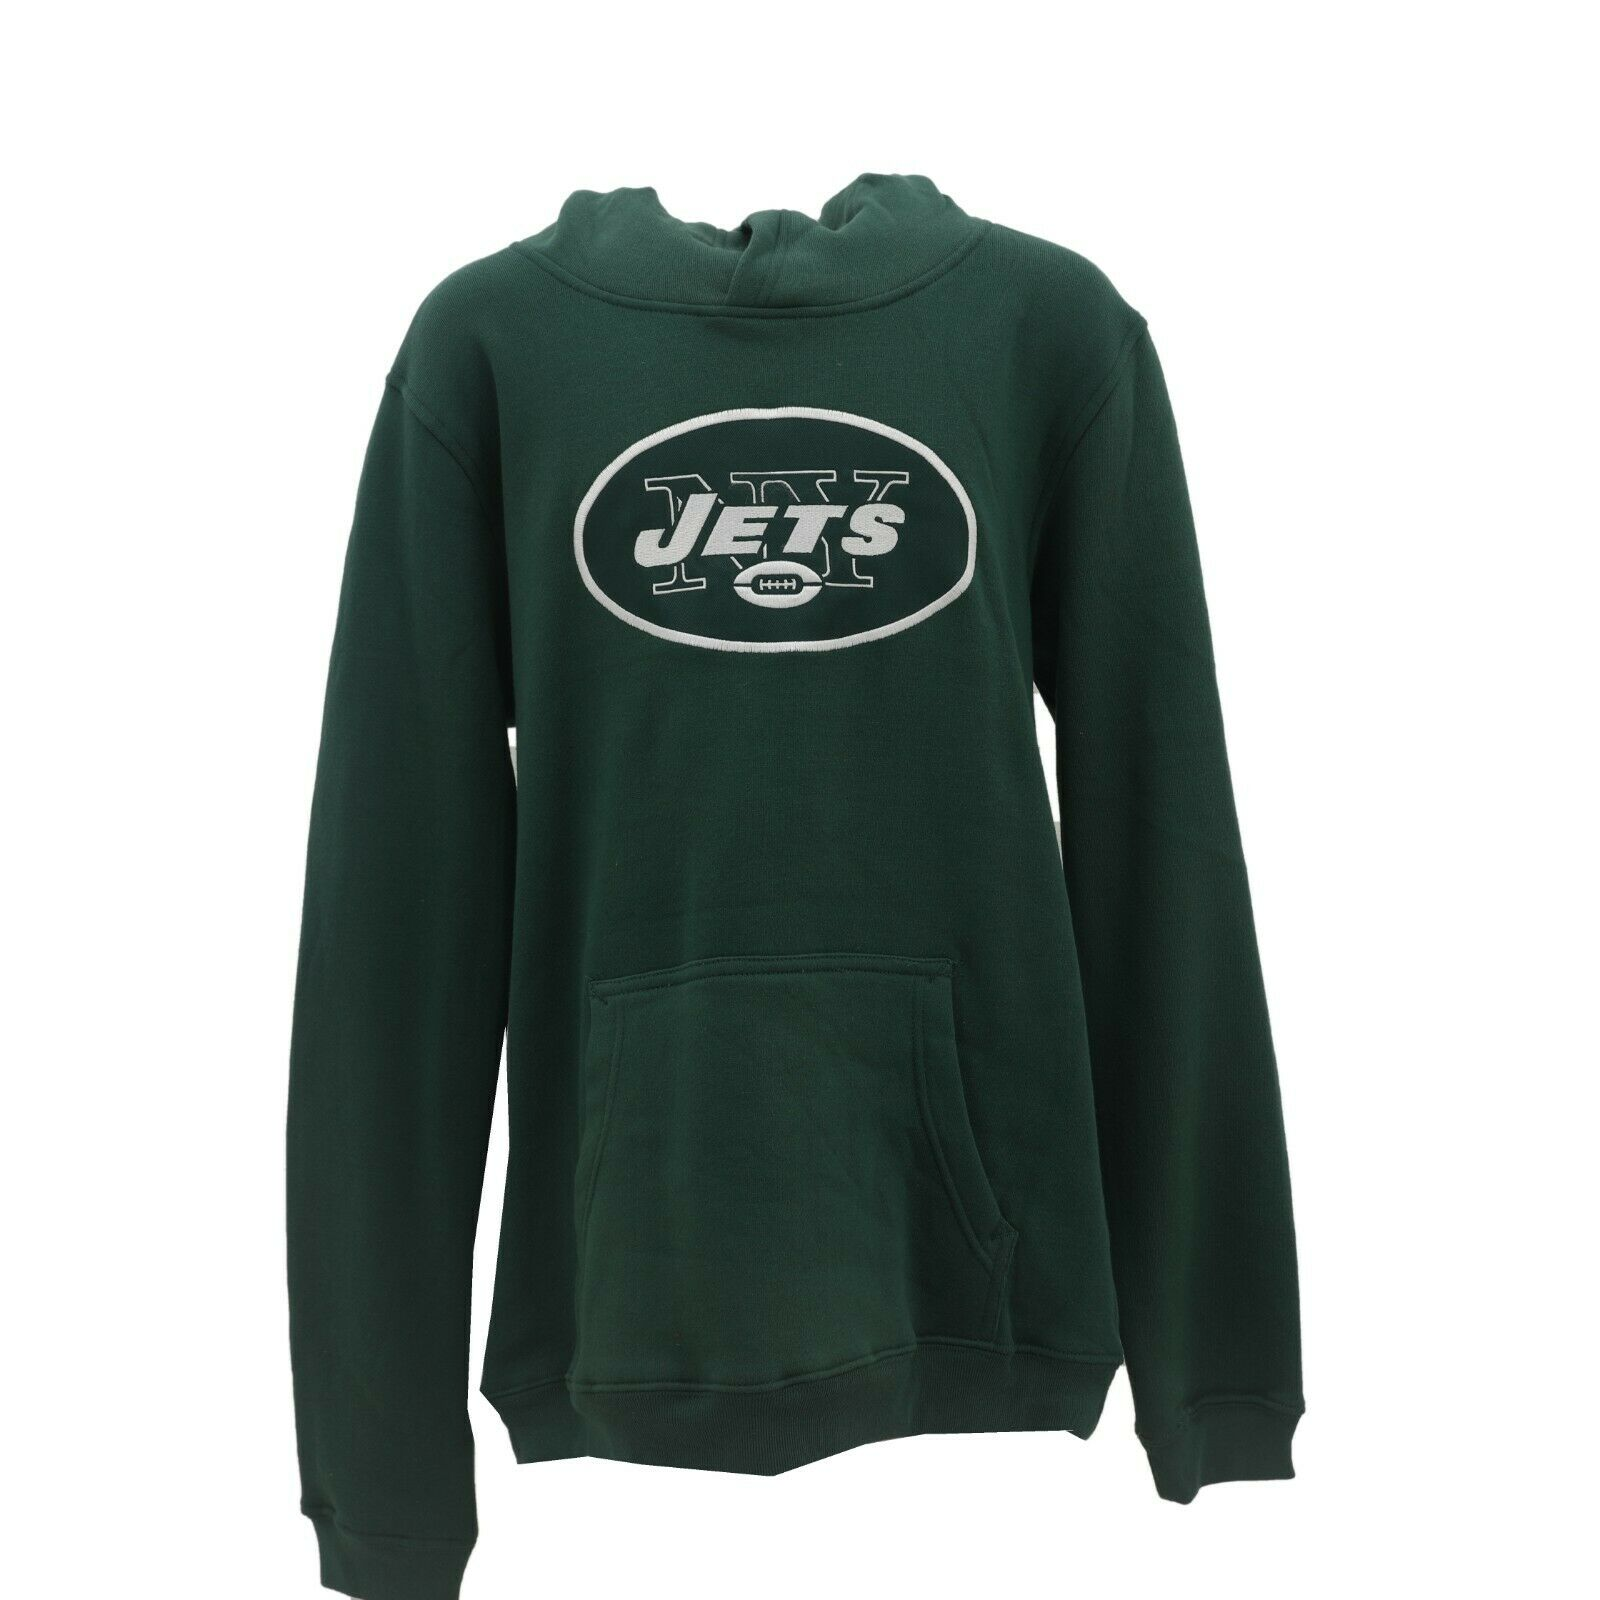 New York Jets Official NFL Apparel Kids Youth Size Hooded Sweatshirt